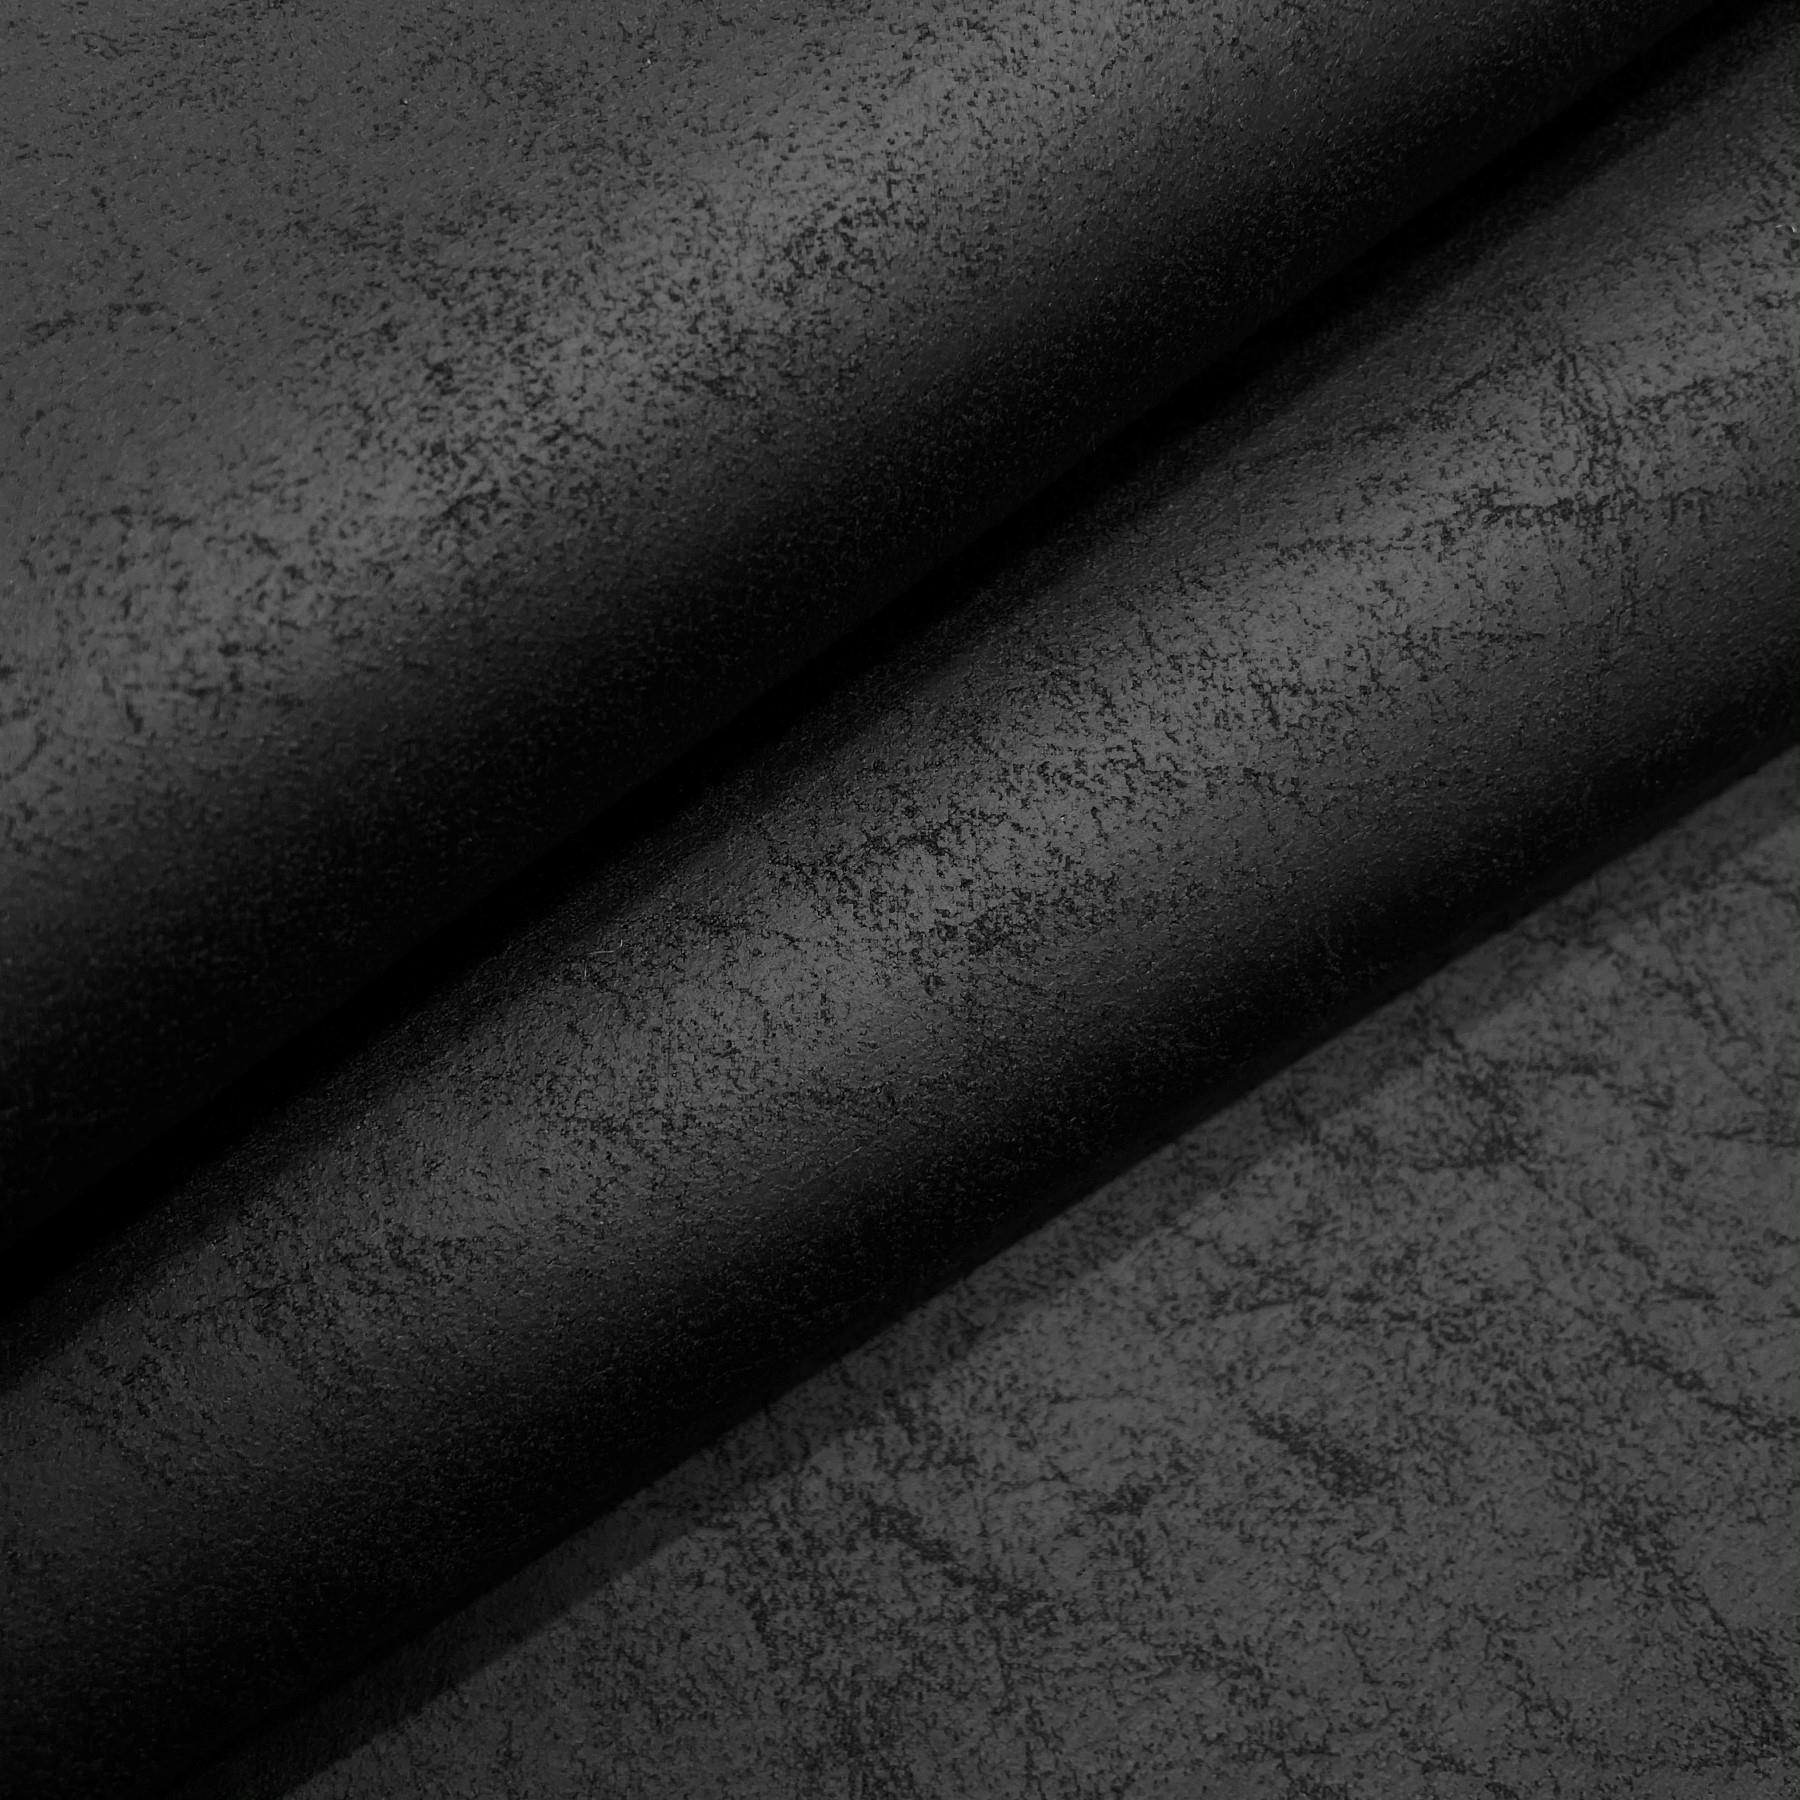 thumbnail 14 - AGED BROWN DISTRESSED ANTIQUED SUEDE FAUX LEATHER LEATHERETTE UPHOLSTERY FABRIC